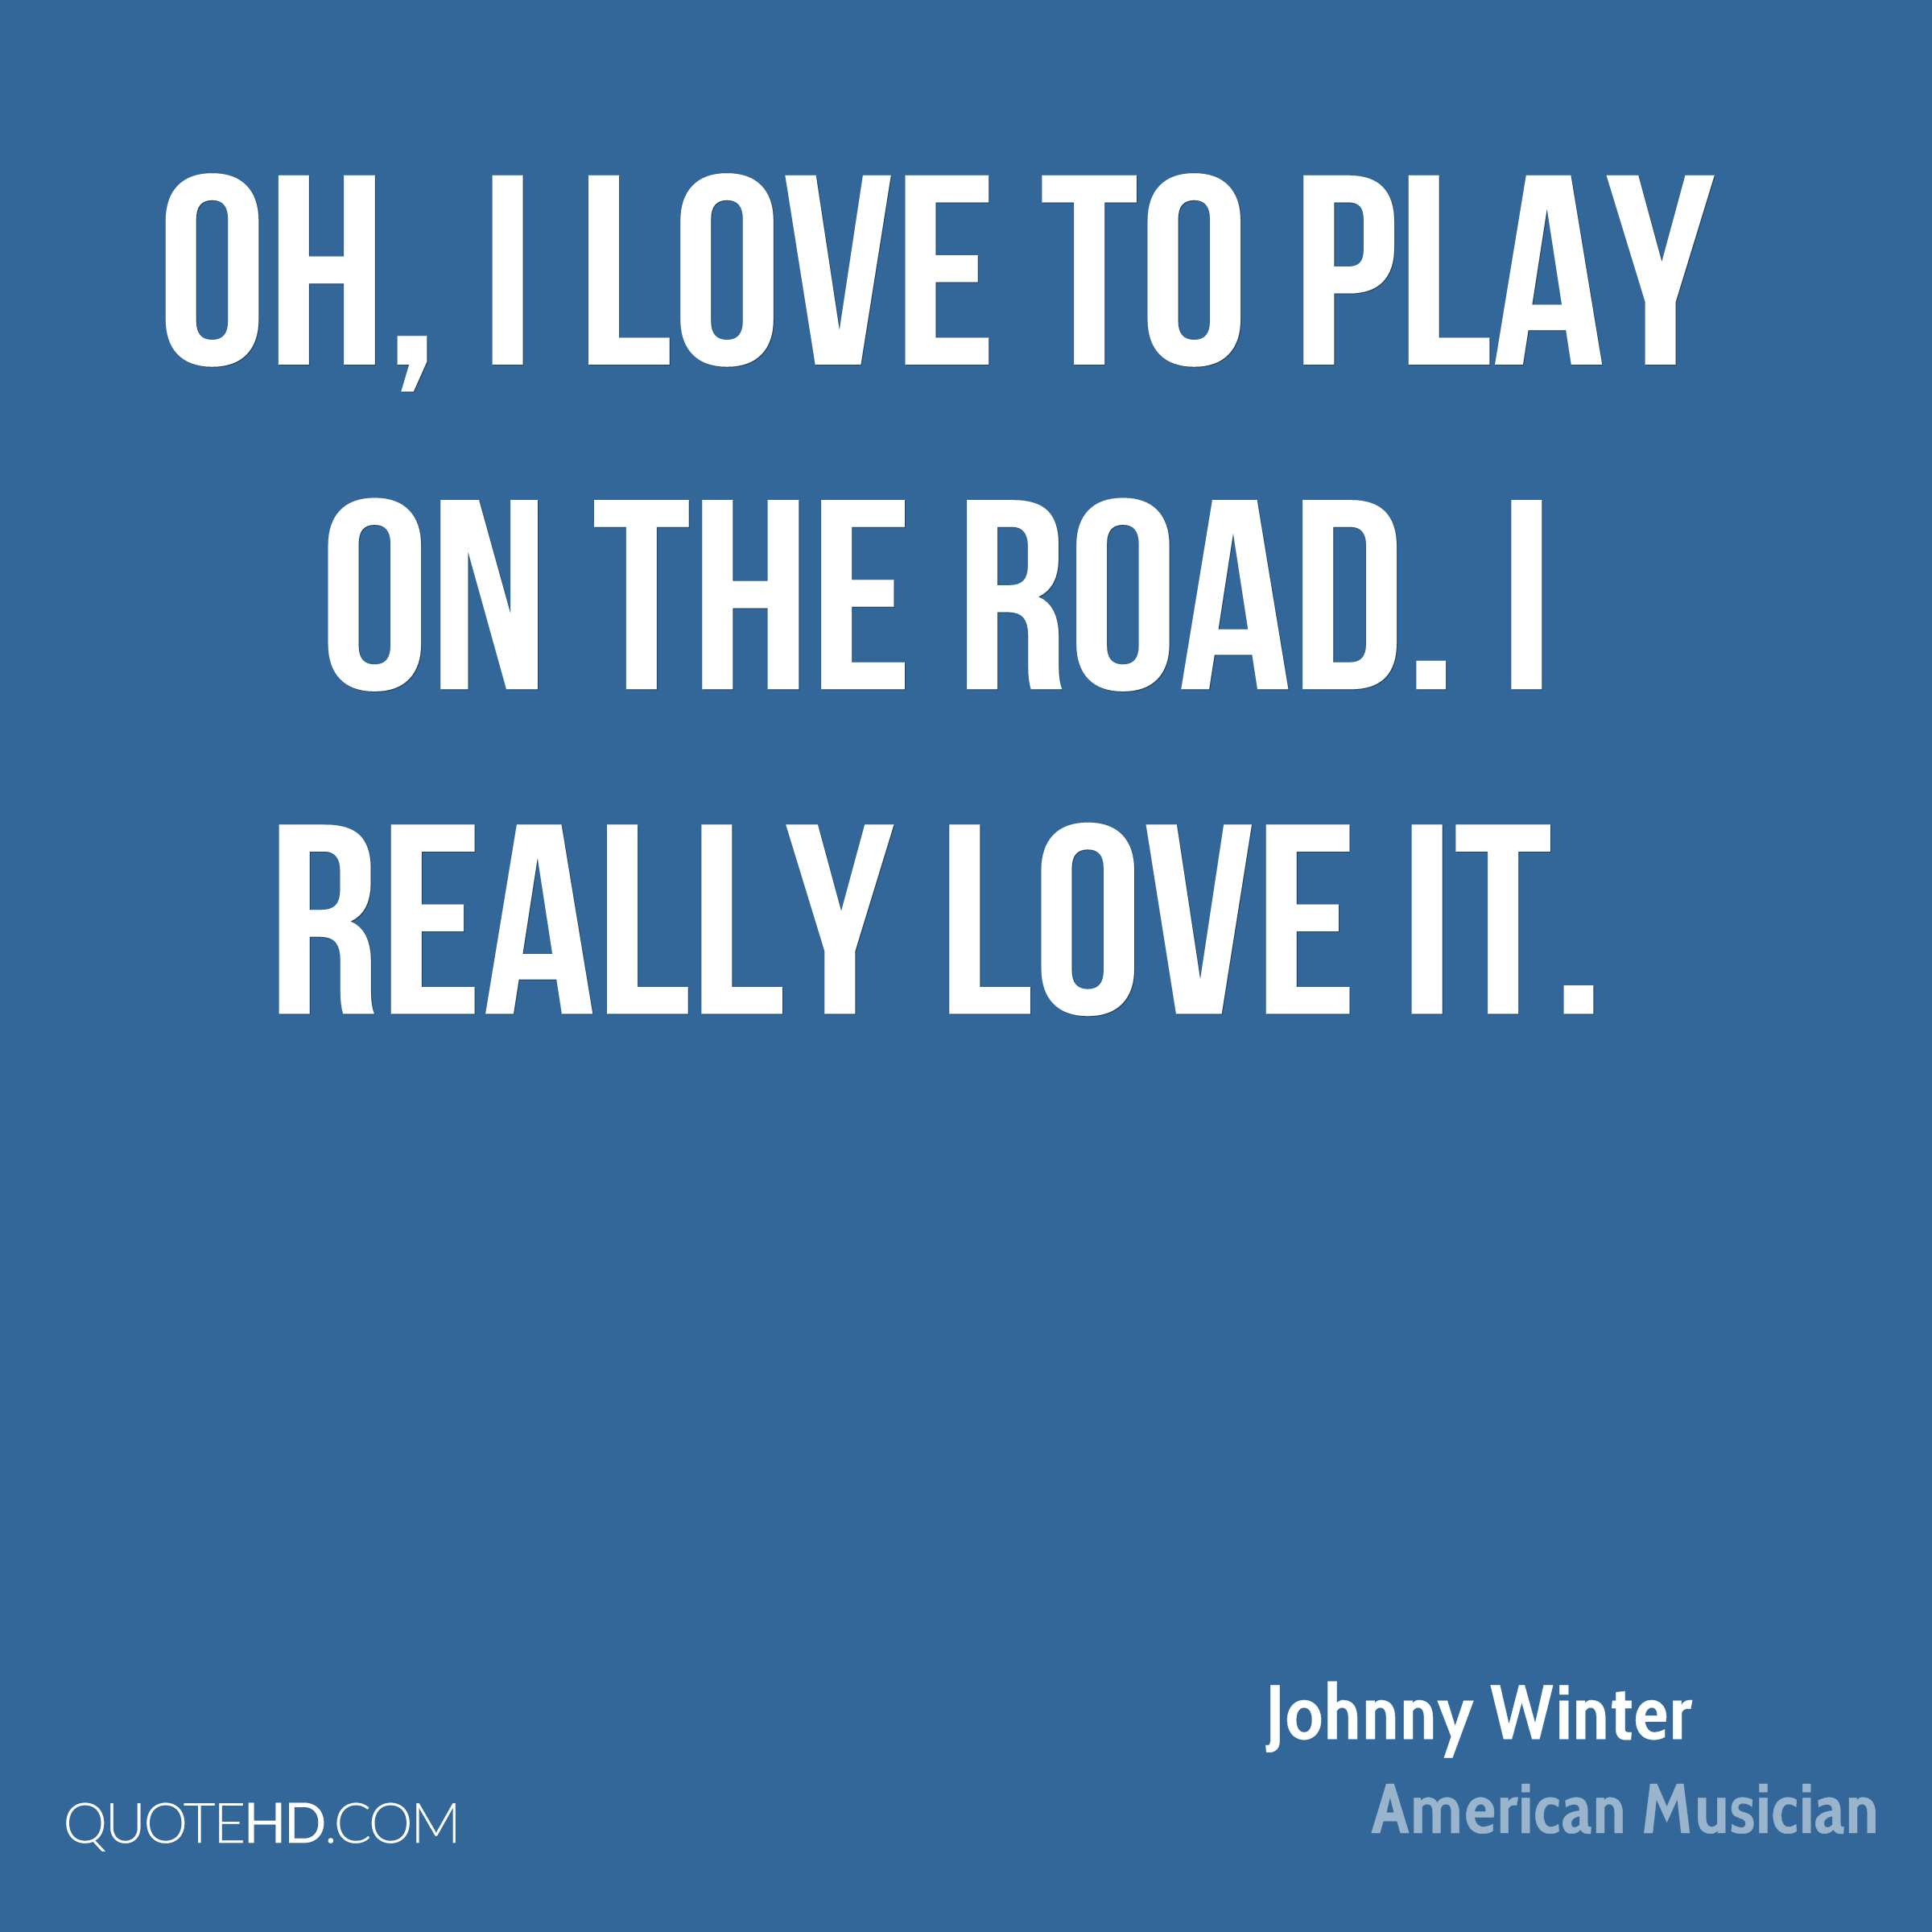 Oh, I love to play on the road. I really love it.